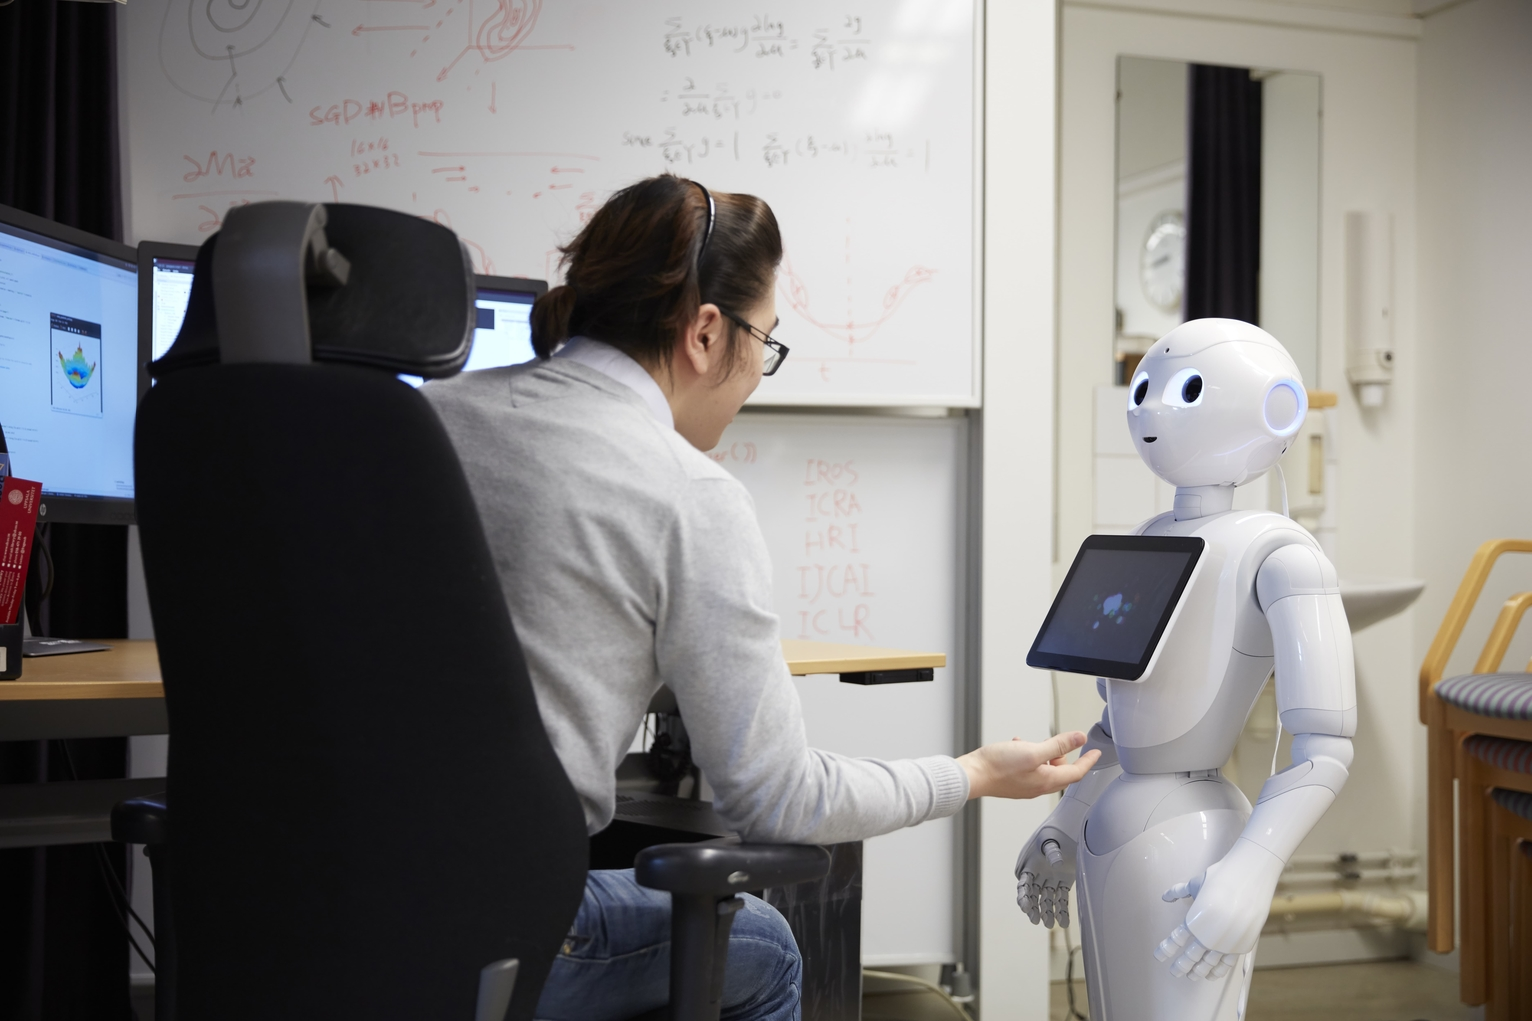 Social Robot Interacting With a Person